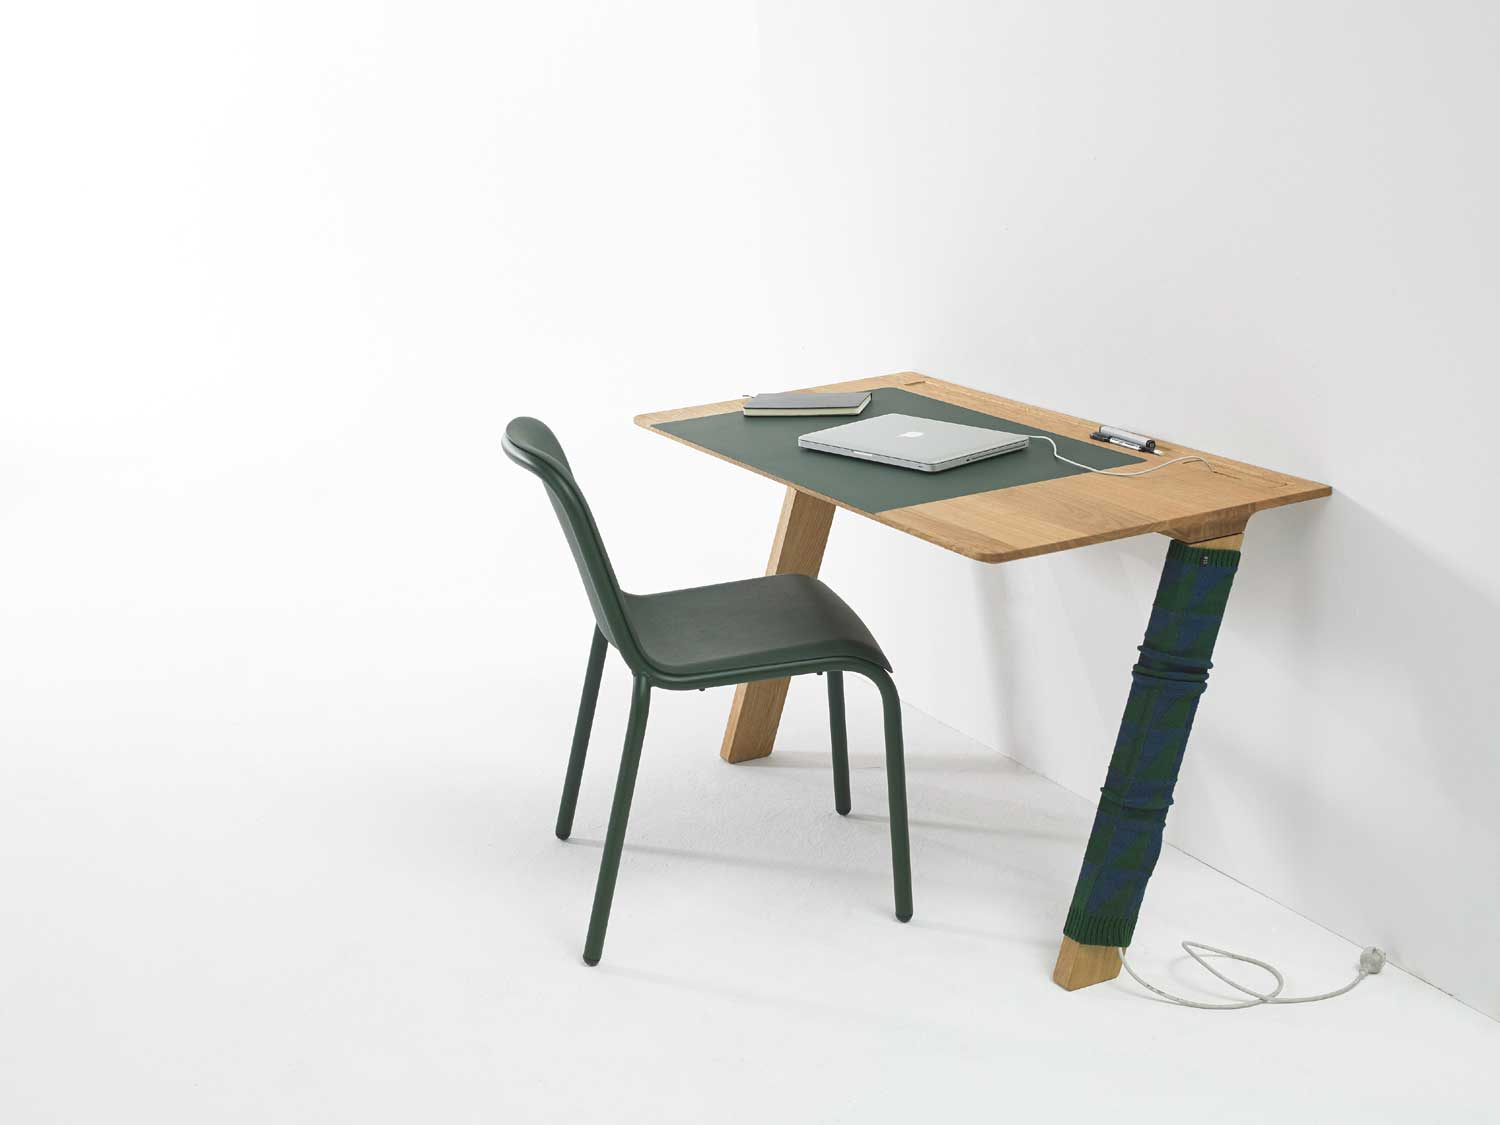 Furniture Design Desks Workspace Wooden Tables Joy Zeta Desks Tops